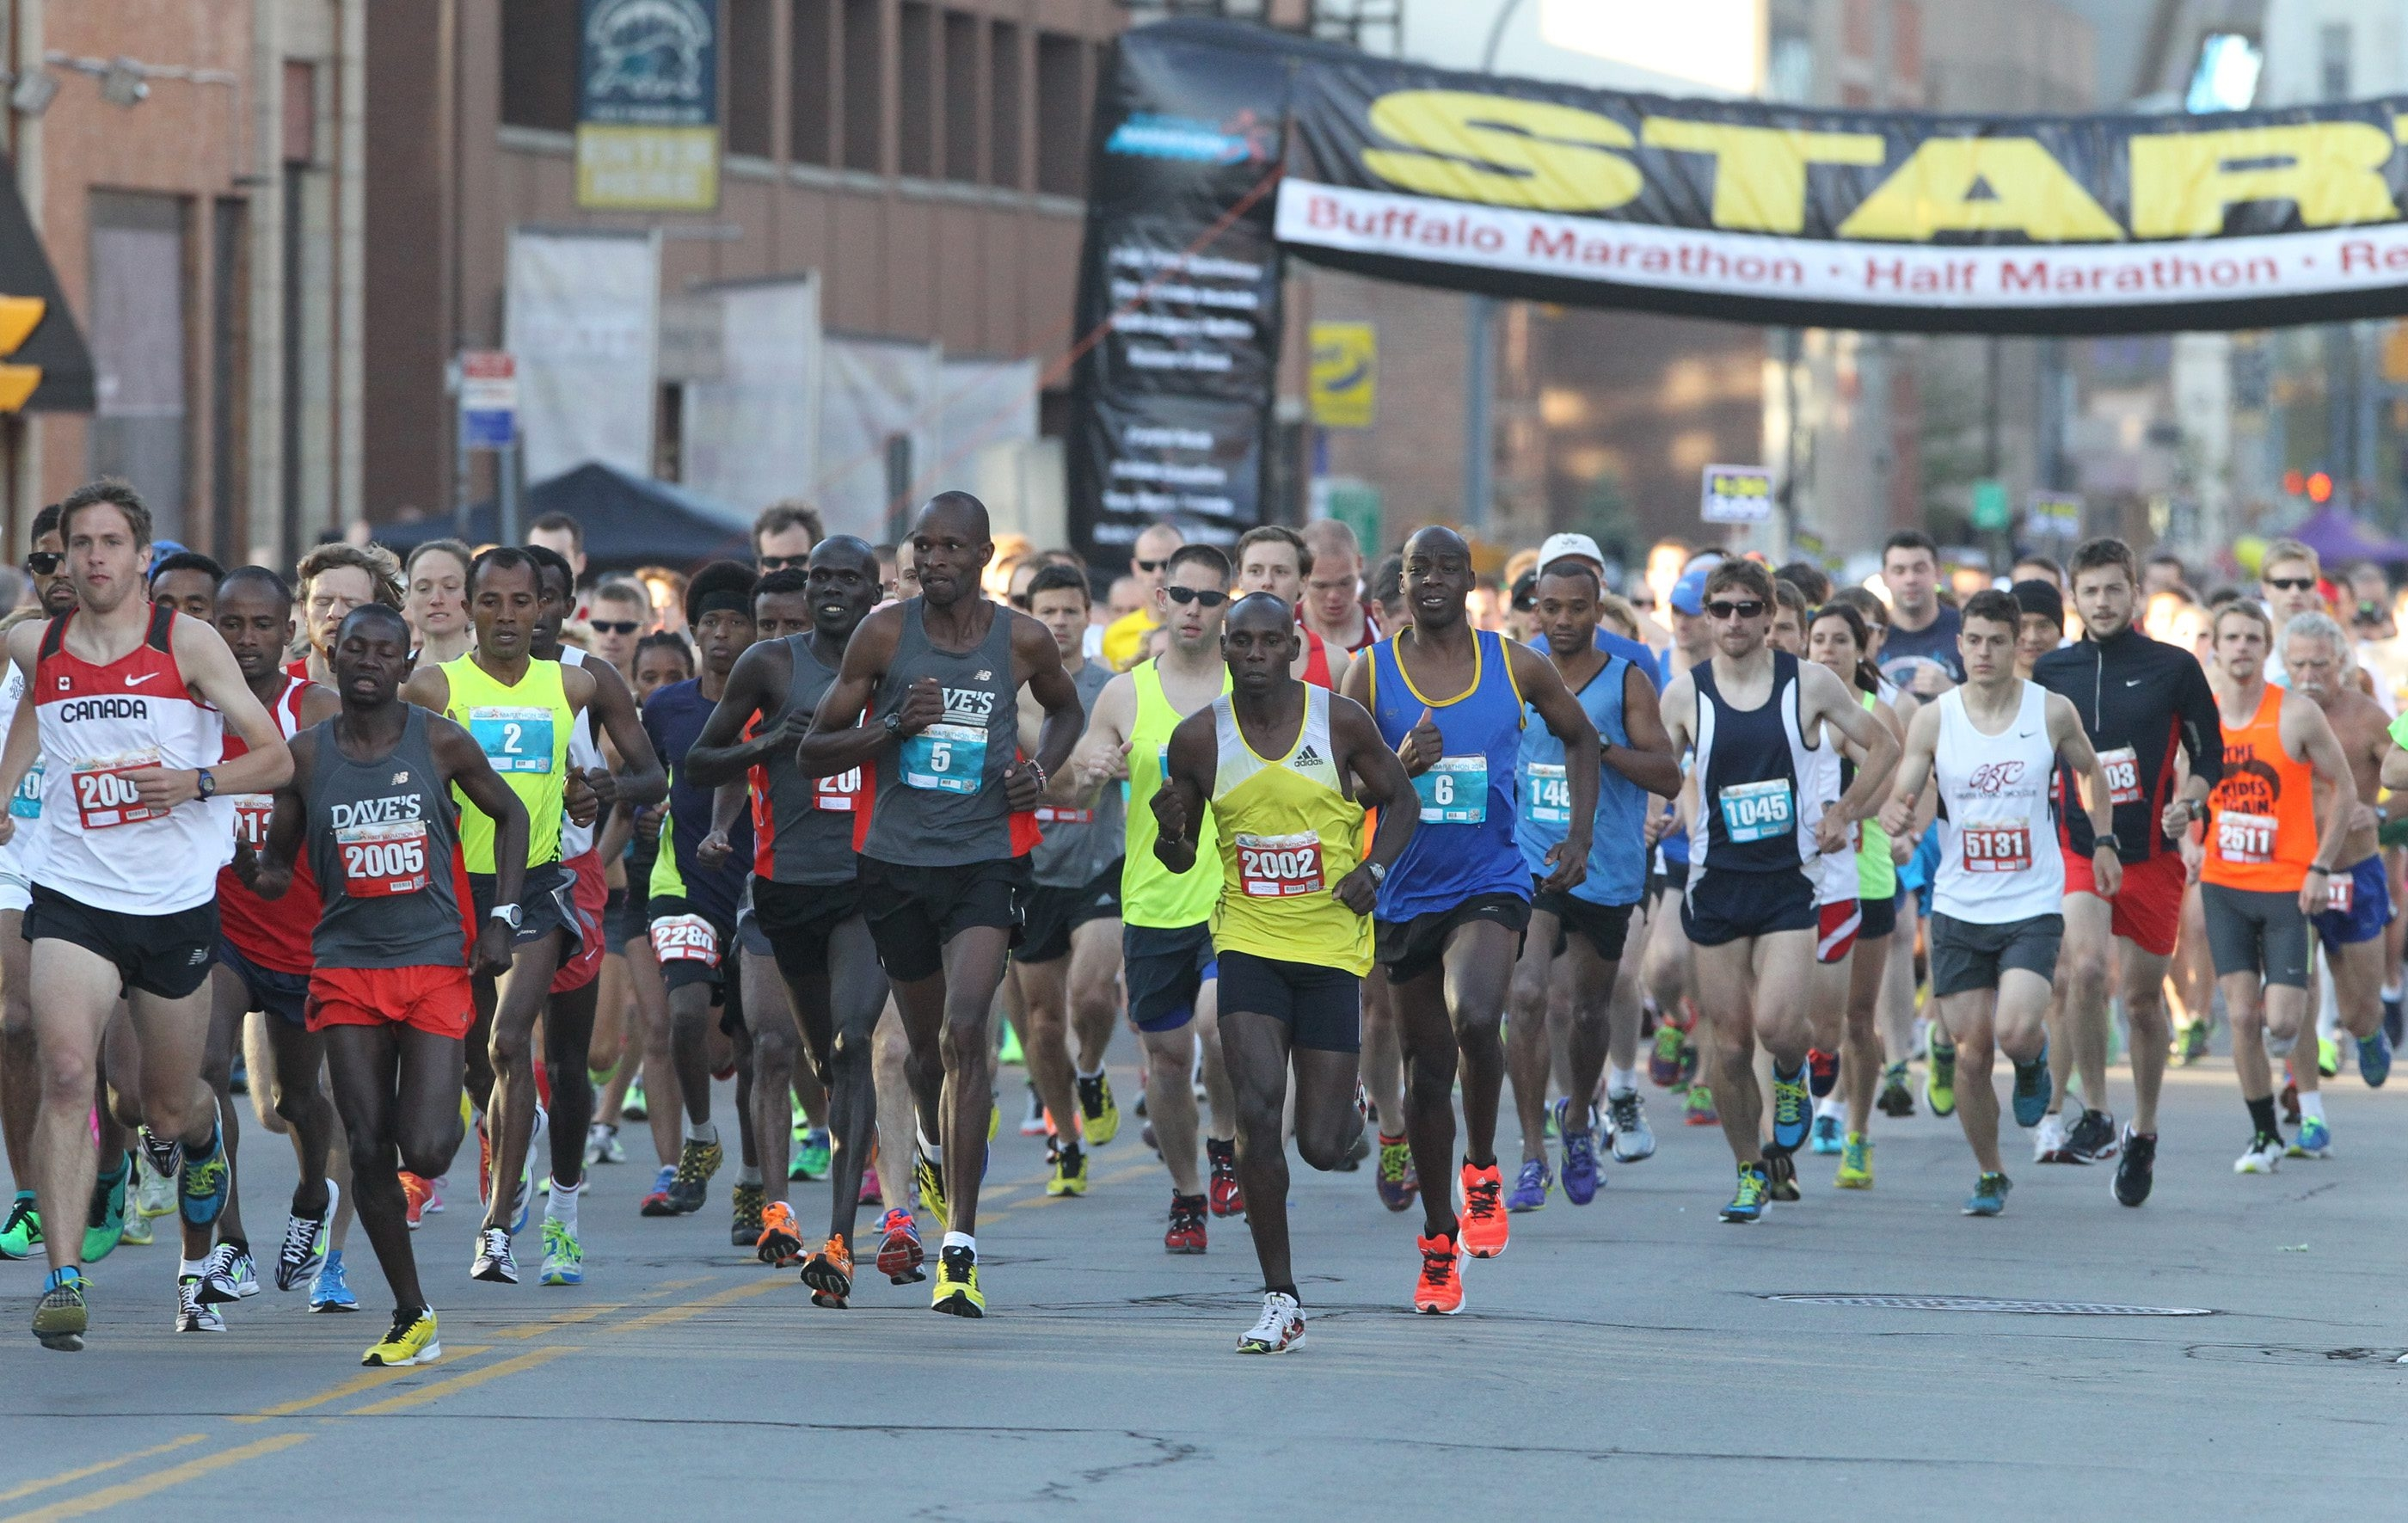 The 2014 Buffalo Marathon started on Franklin Street. This year's race will begin on Delaware Avenue, to give runners more breathing room, according to new race director Greg Weber. The marathon, half-marathon and marathon relay are all sold out.